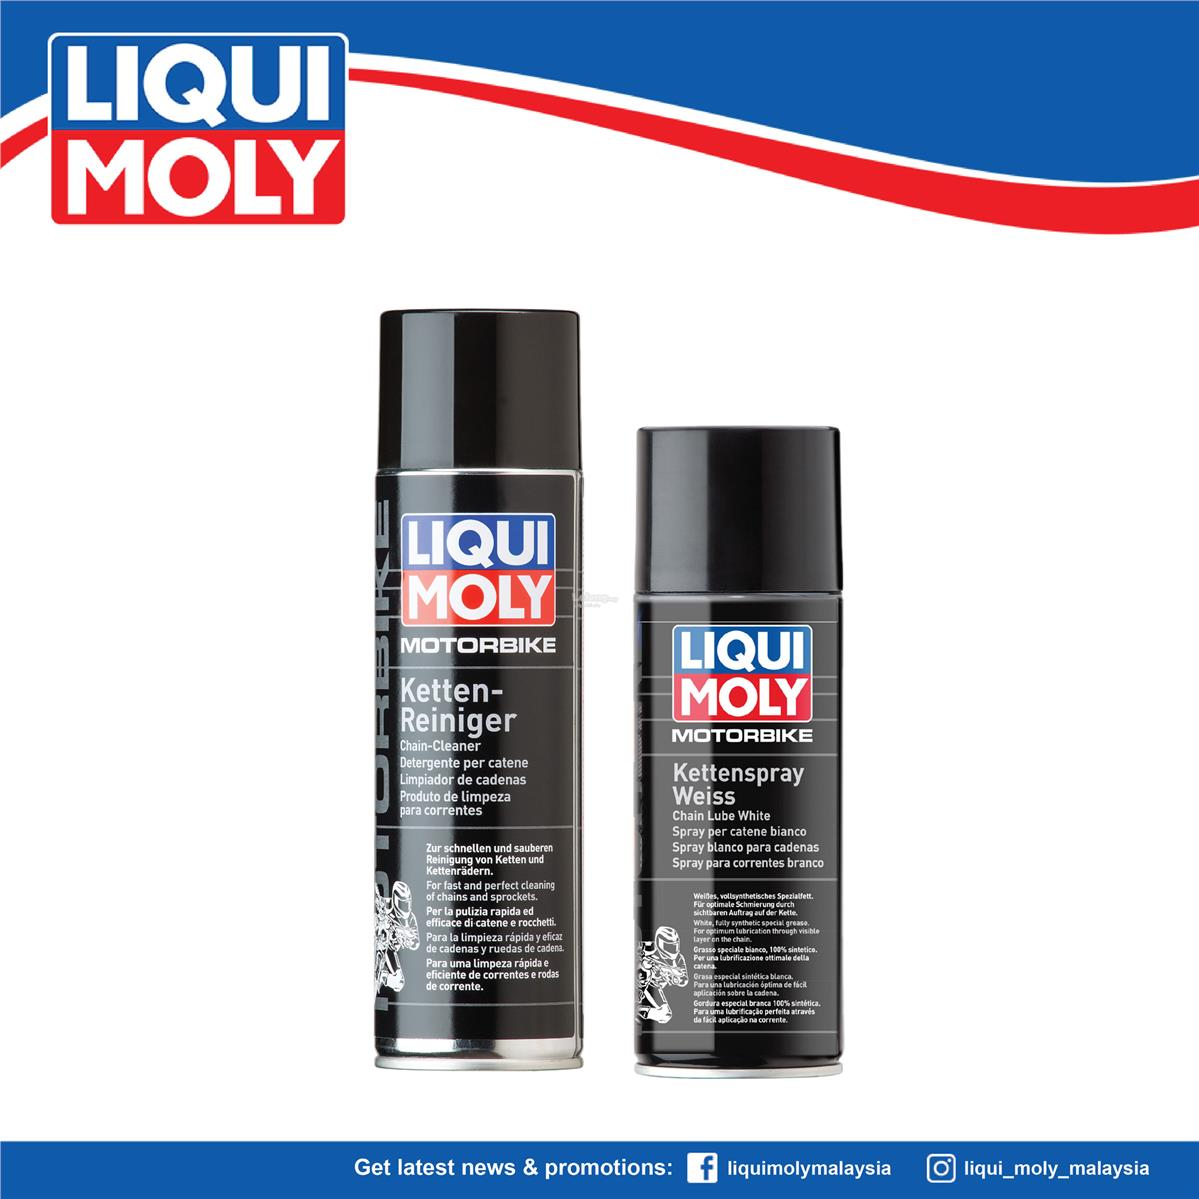 Hot Liqui Moly nudes (88 photo), Pussy, Hot, Twitter, cleavage 2015